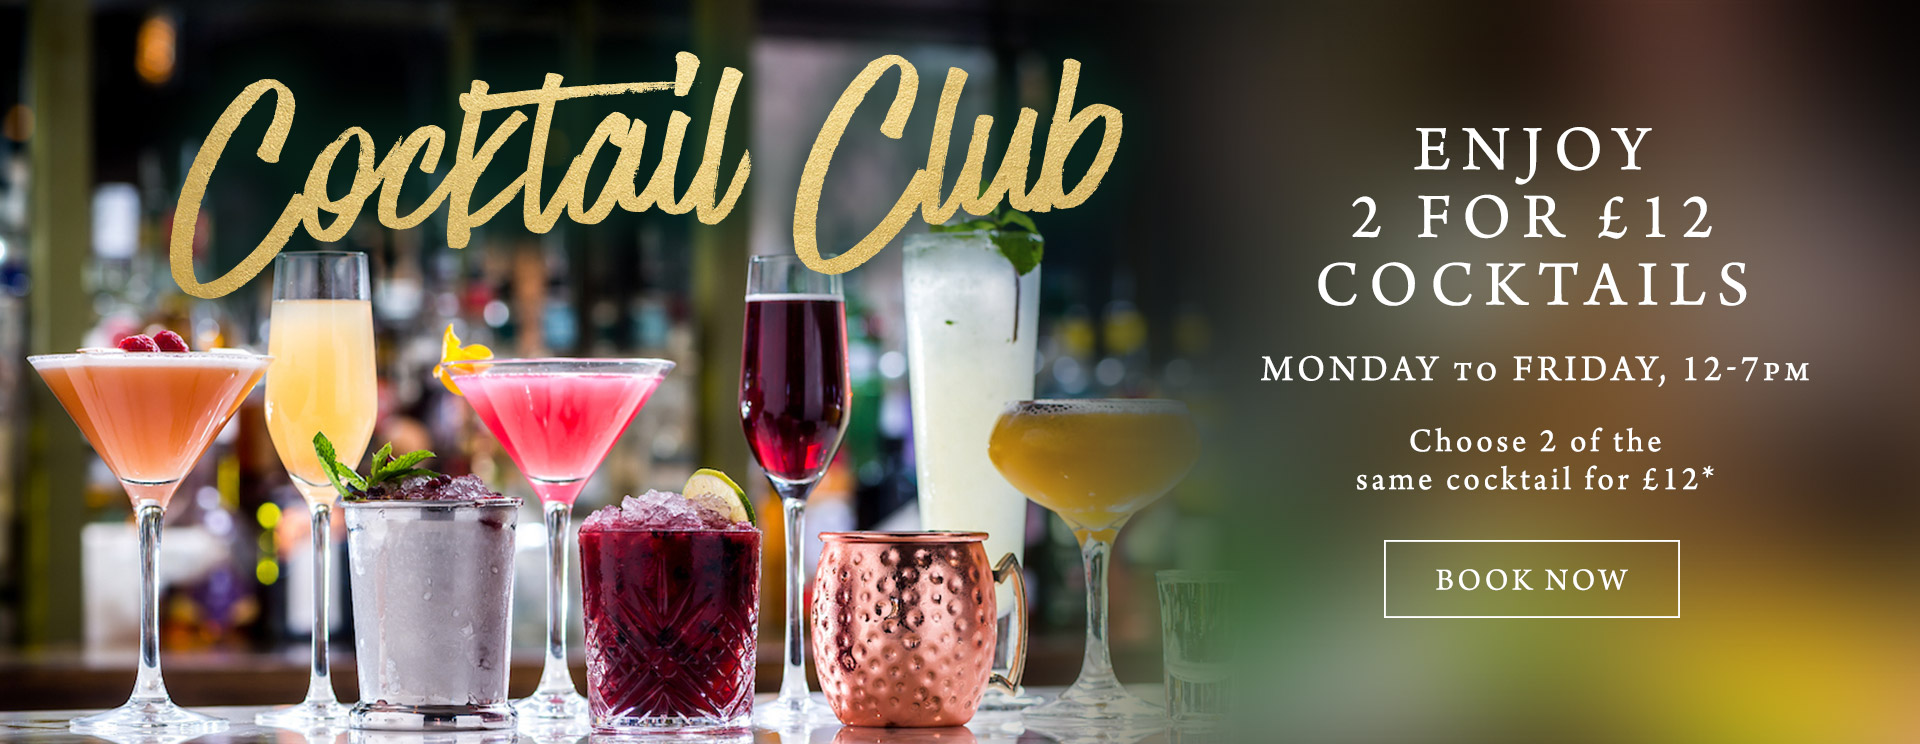 2 for £12 cocktails at The Langton